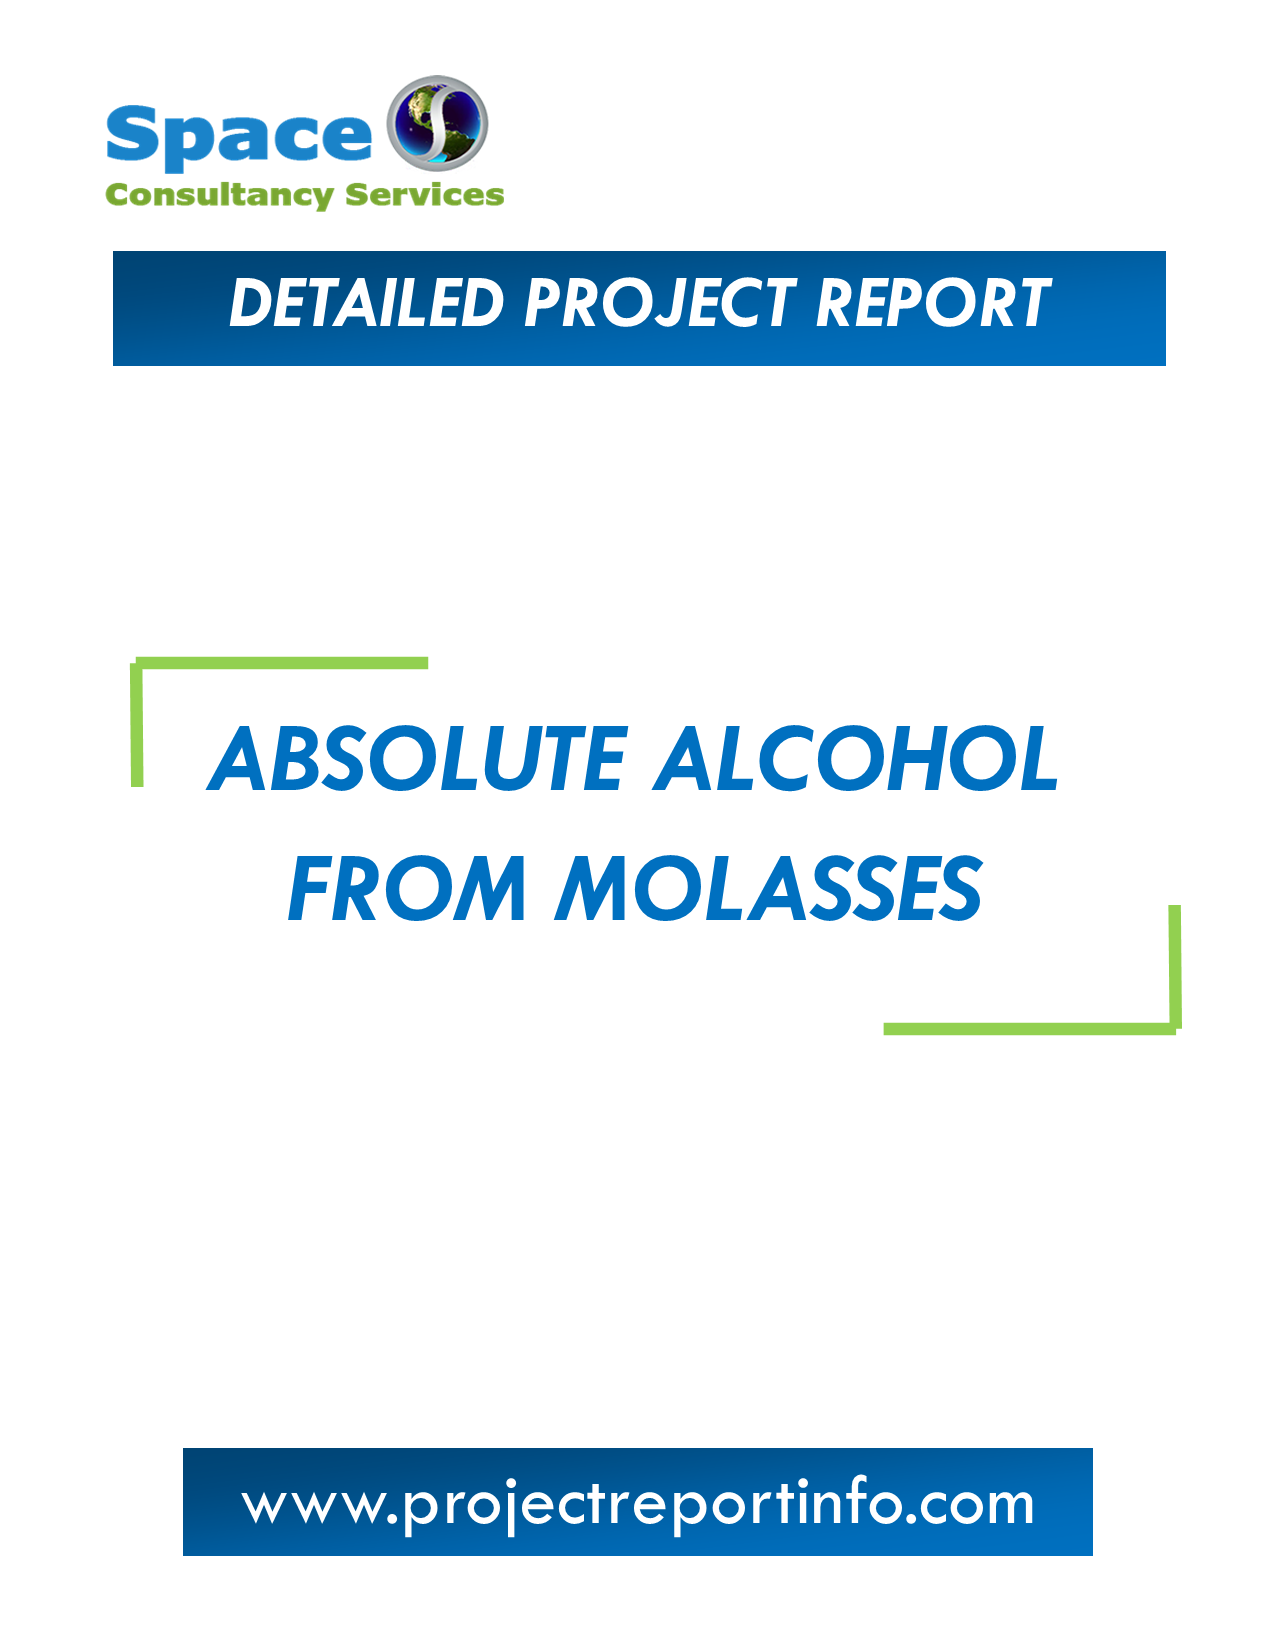 Project Report on Absolute Alcohol from Molasses Plant